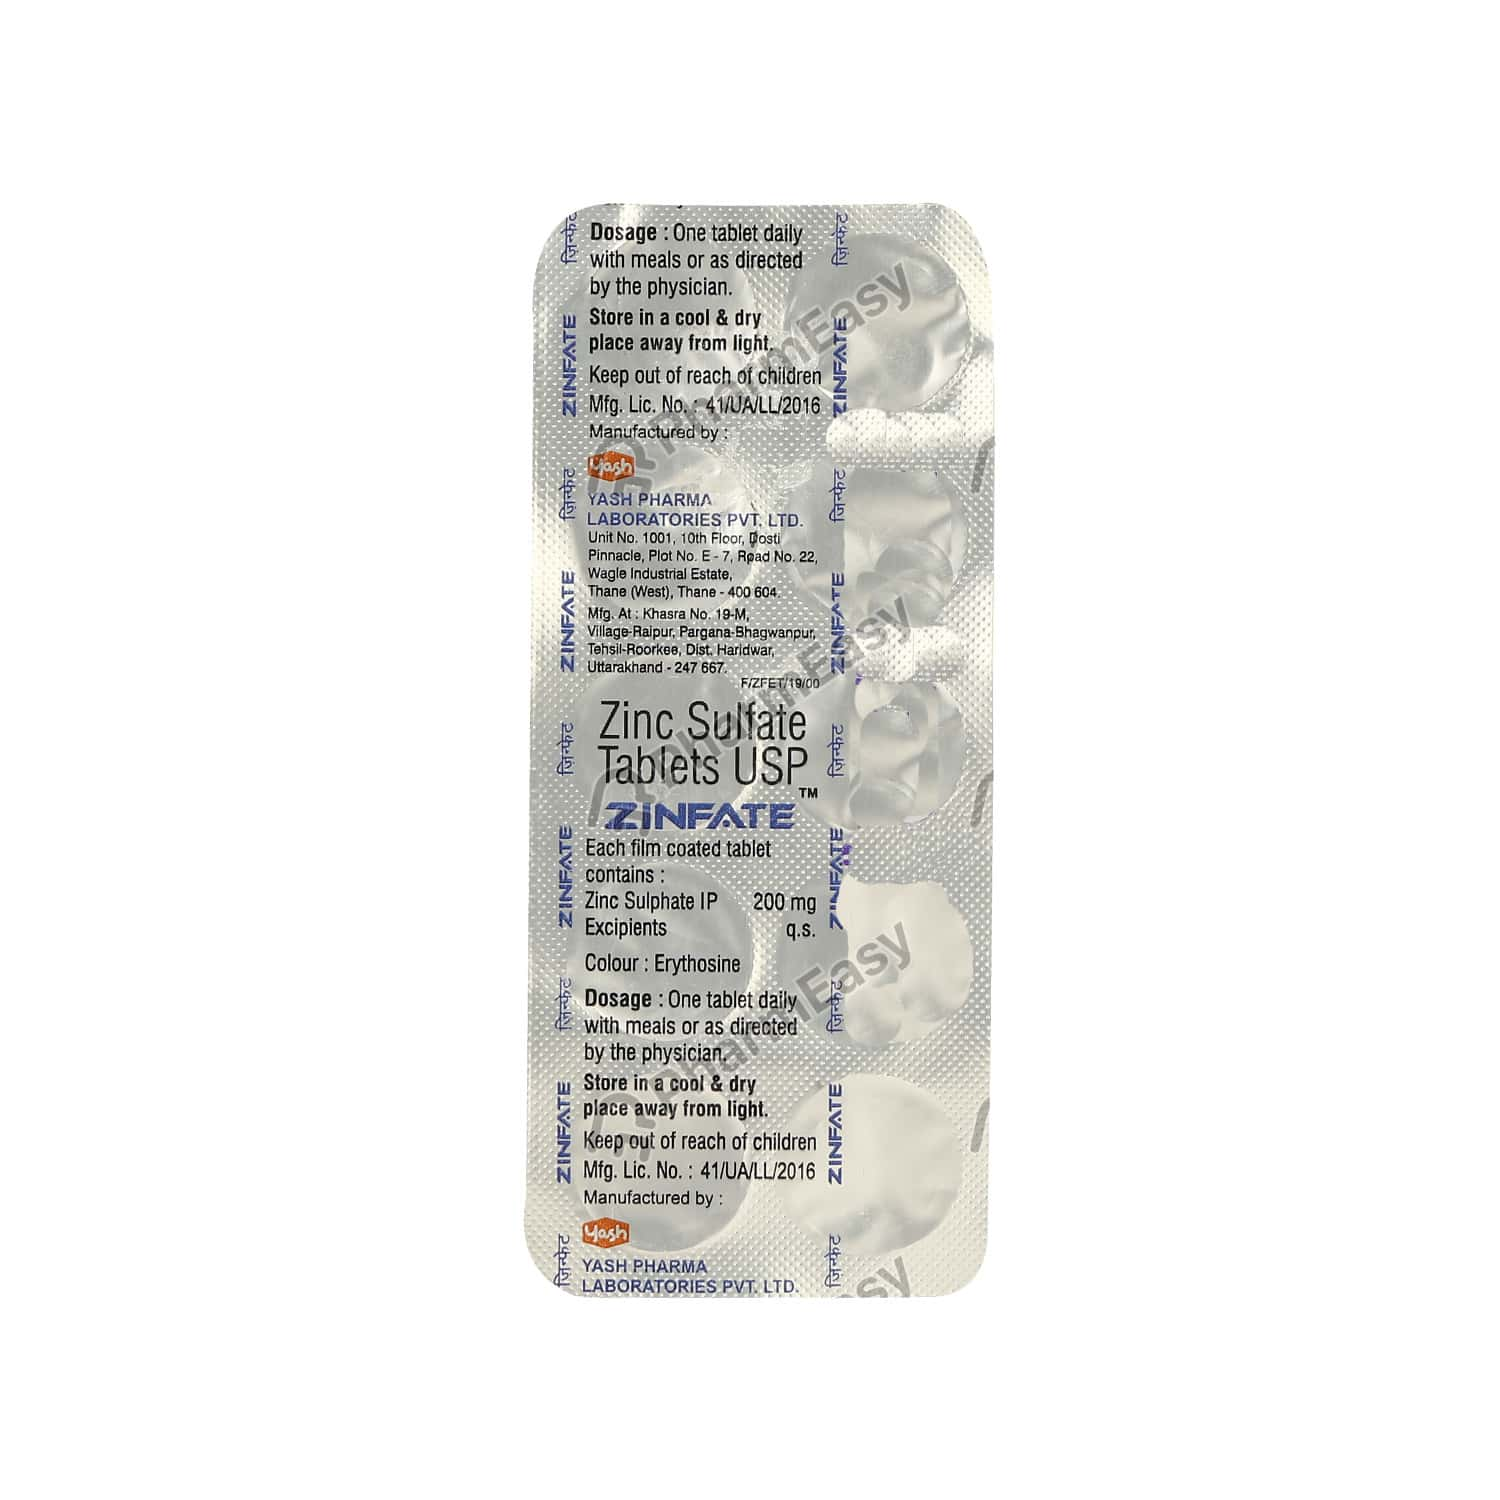 Zinfate 200mg Tablet